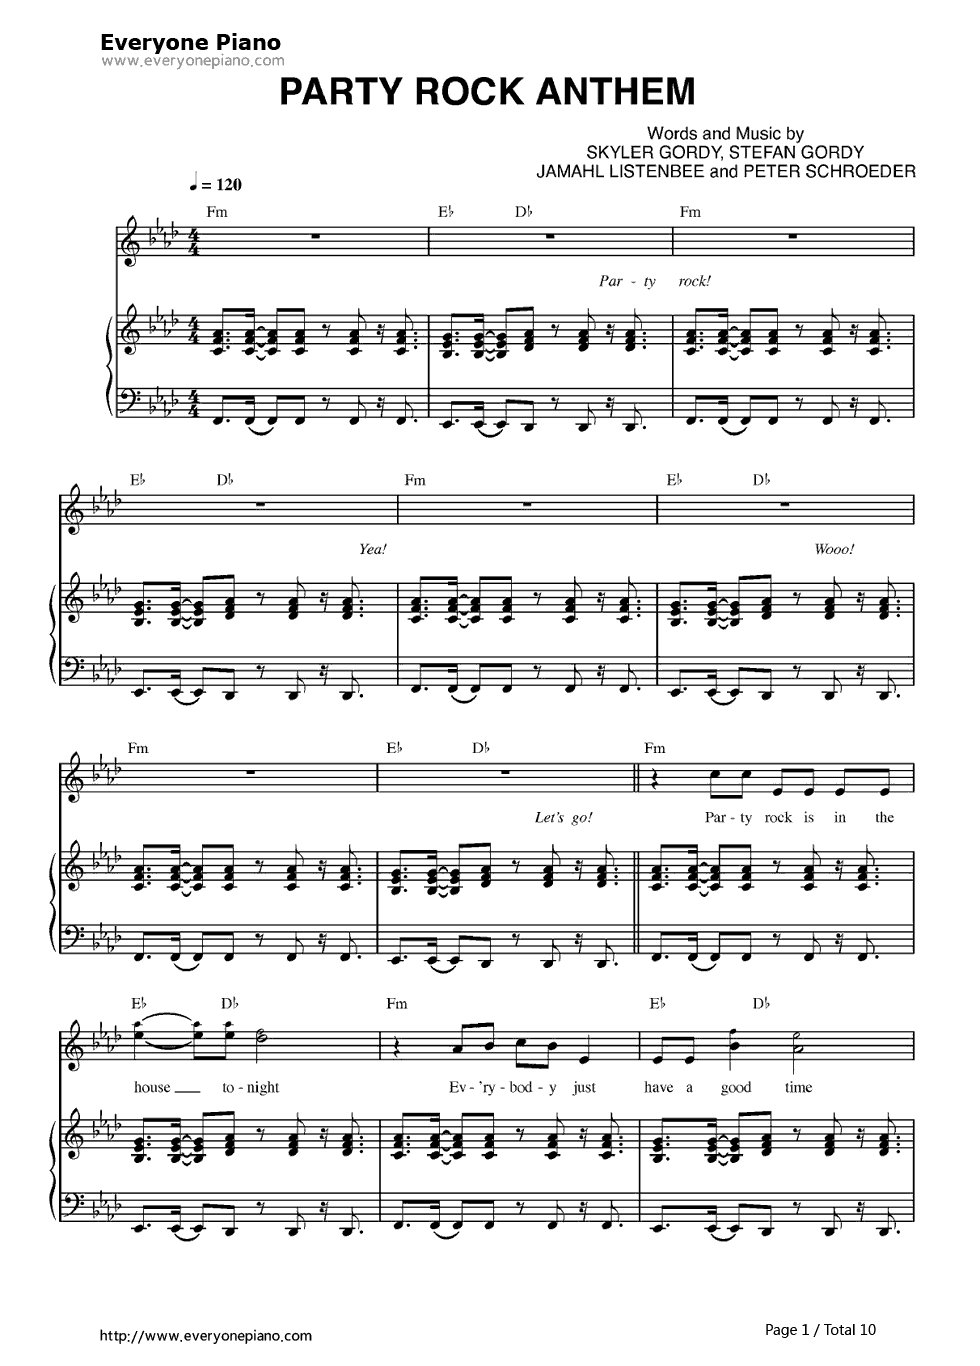 Party rock anthem lmfao stave preview 1 free piano sheet music listen now print sheet party rock anthem lmfao stave preview 1 hexwebz Choice Image